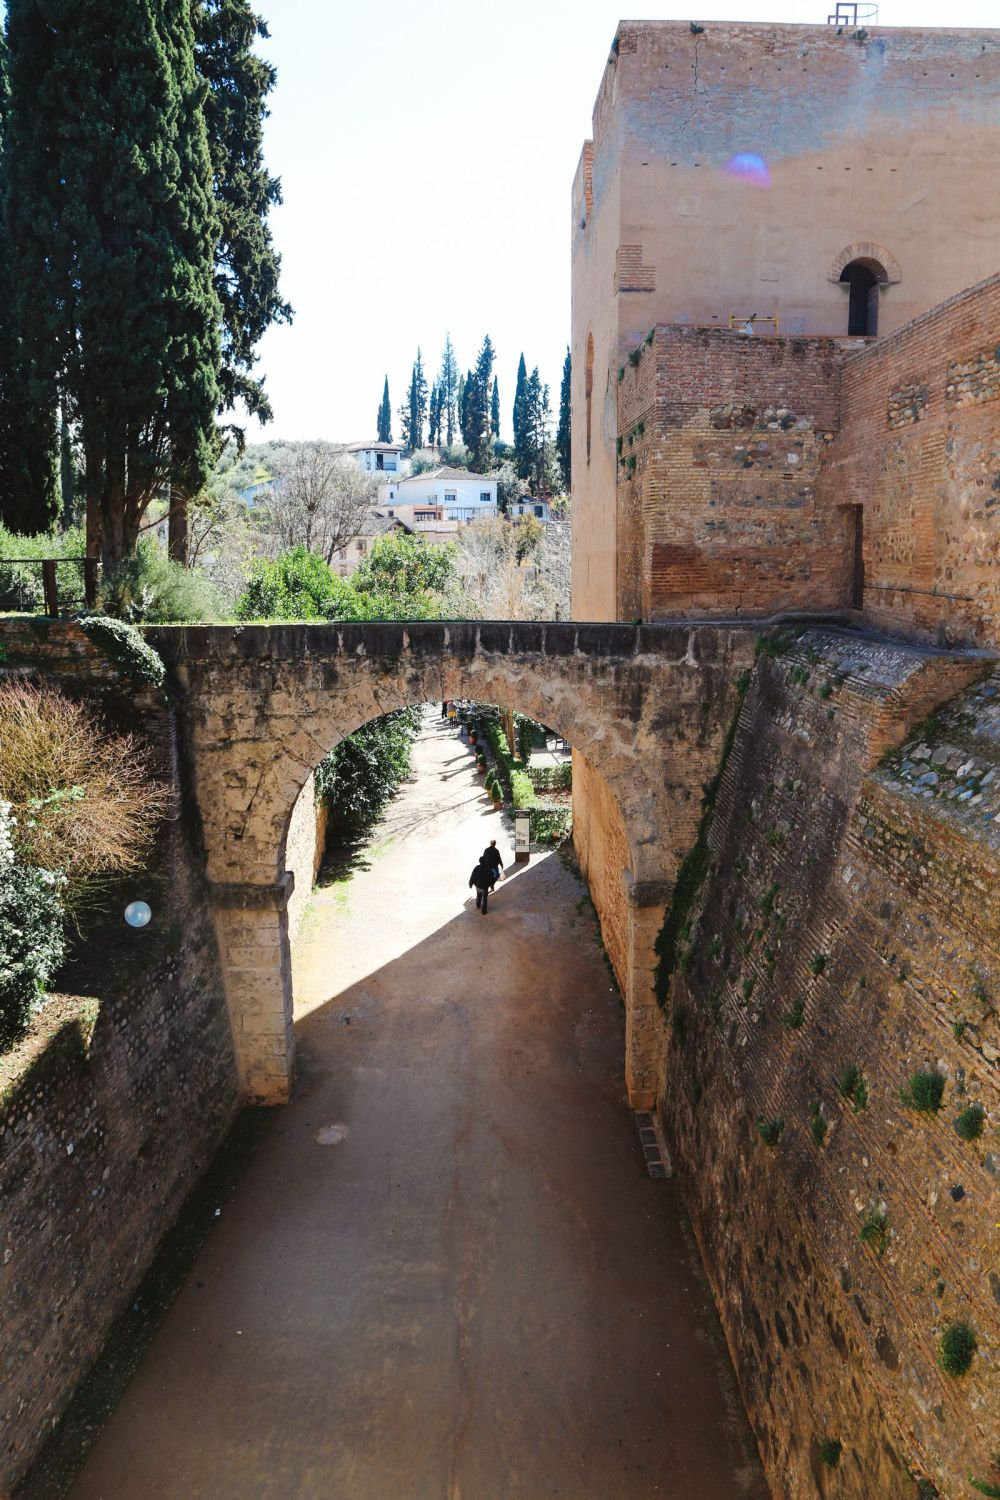 The Amazingly Intricate Alhambra Palace of Spain (7)